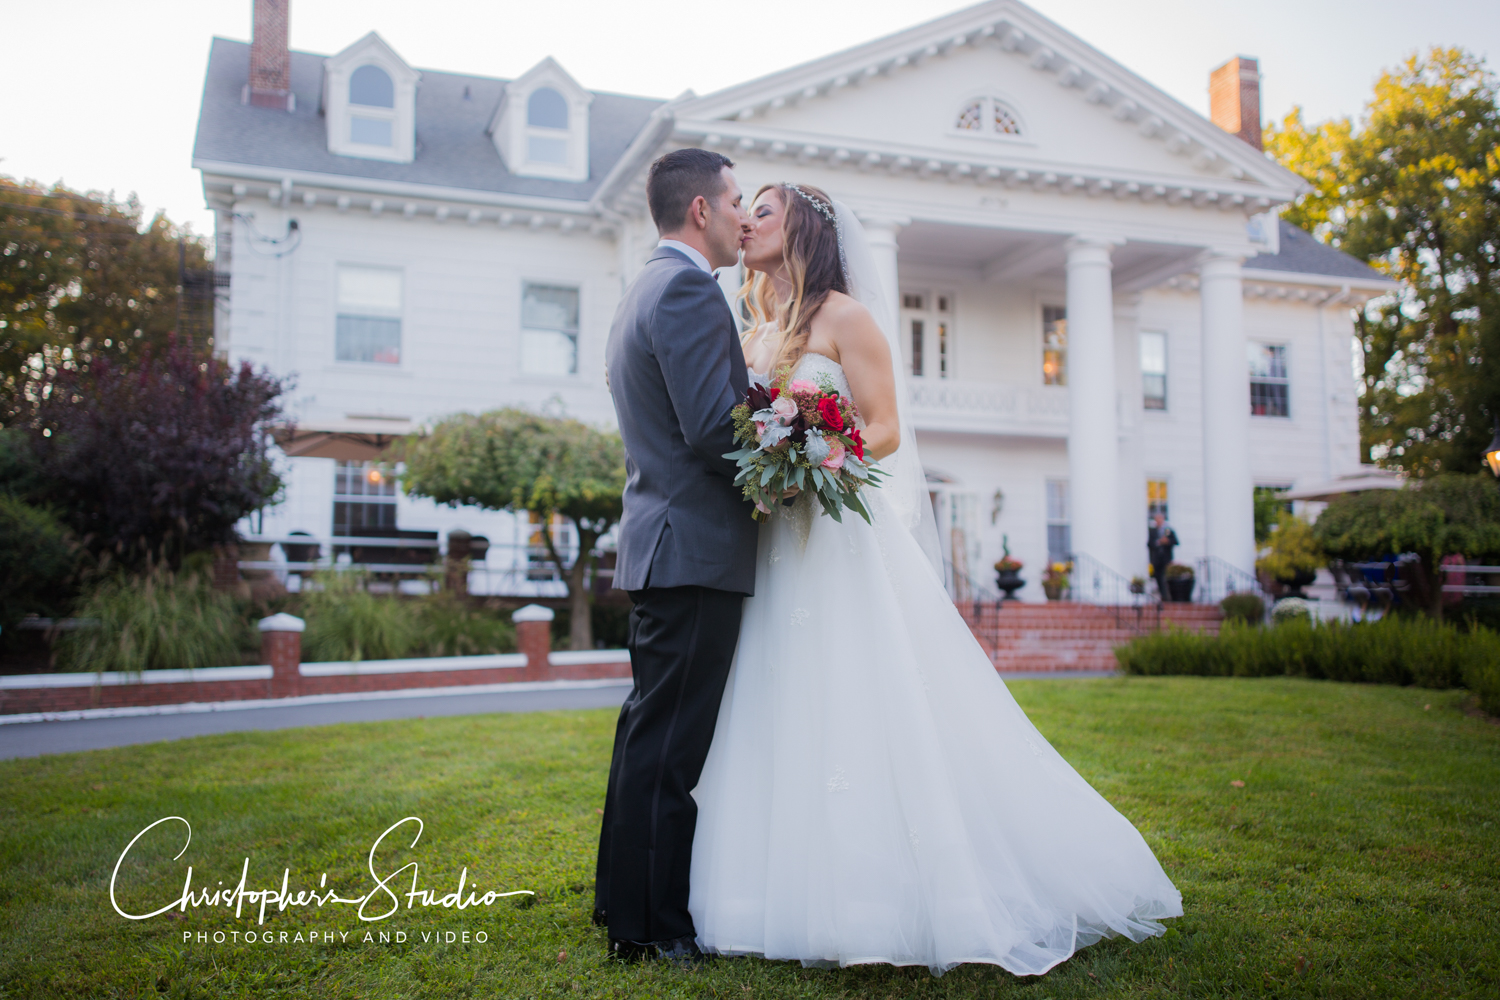 the-briarcliff-manor-mansion-weding-brde-groo-photo